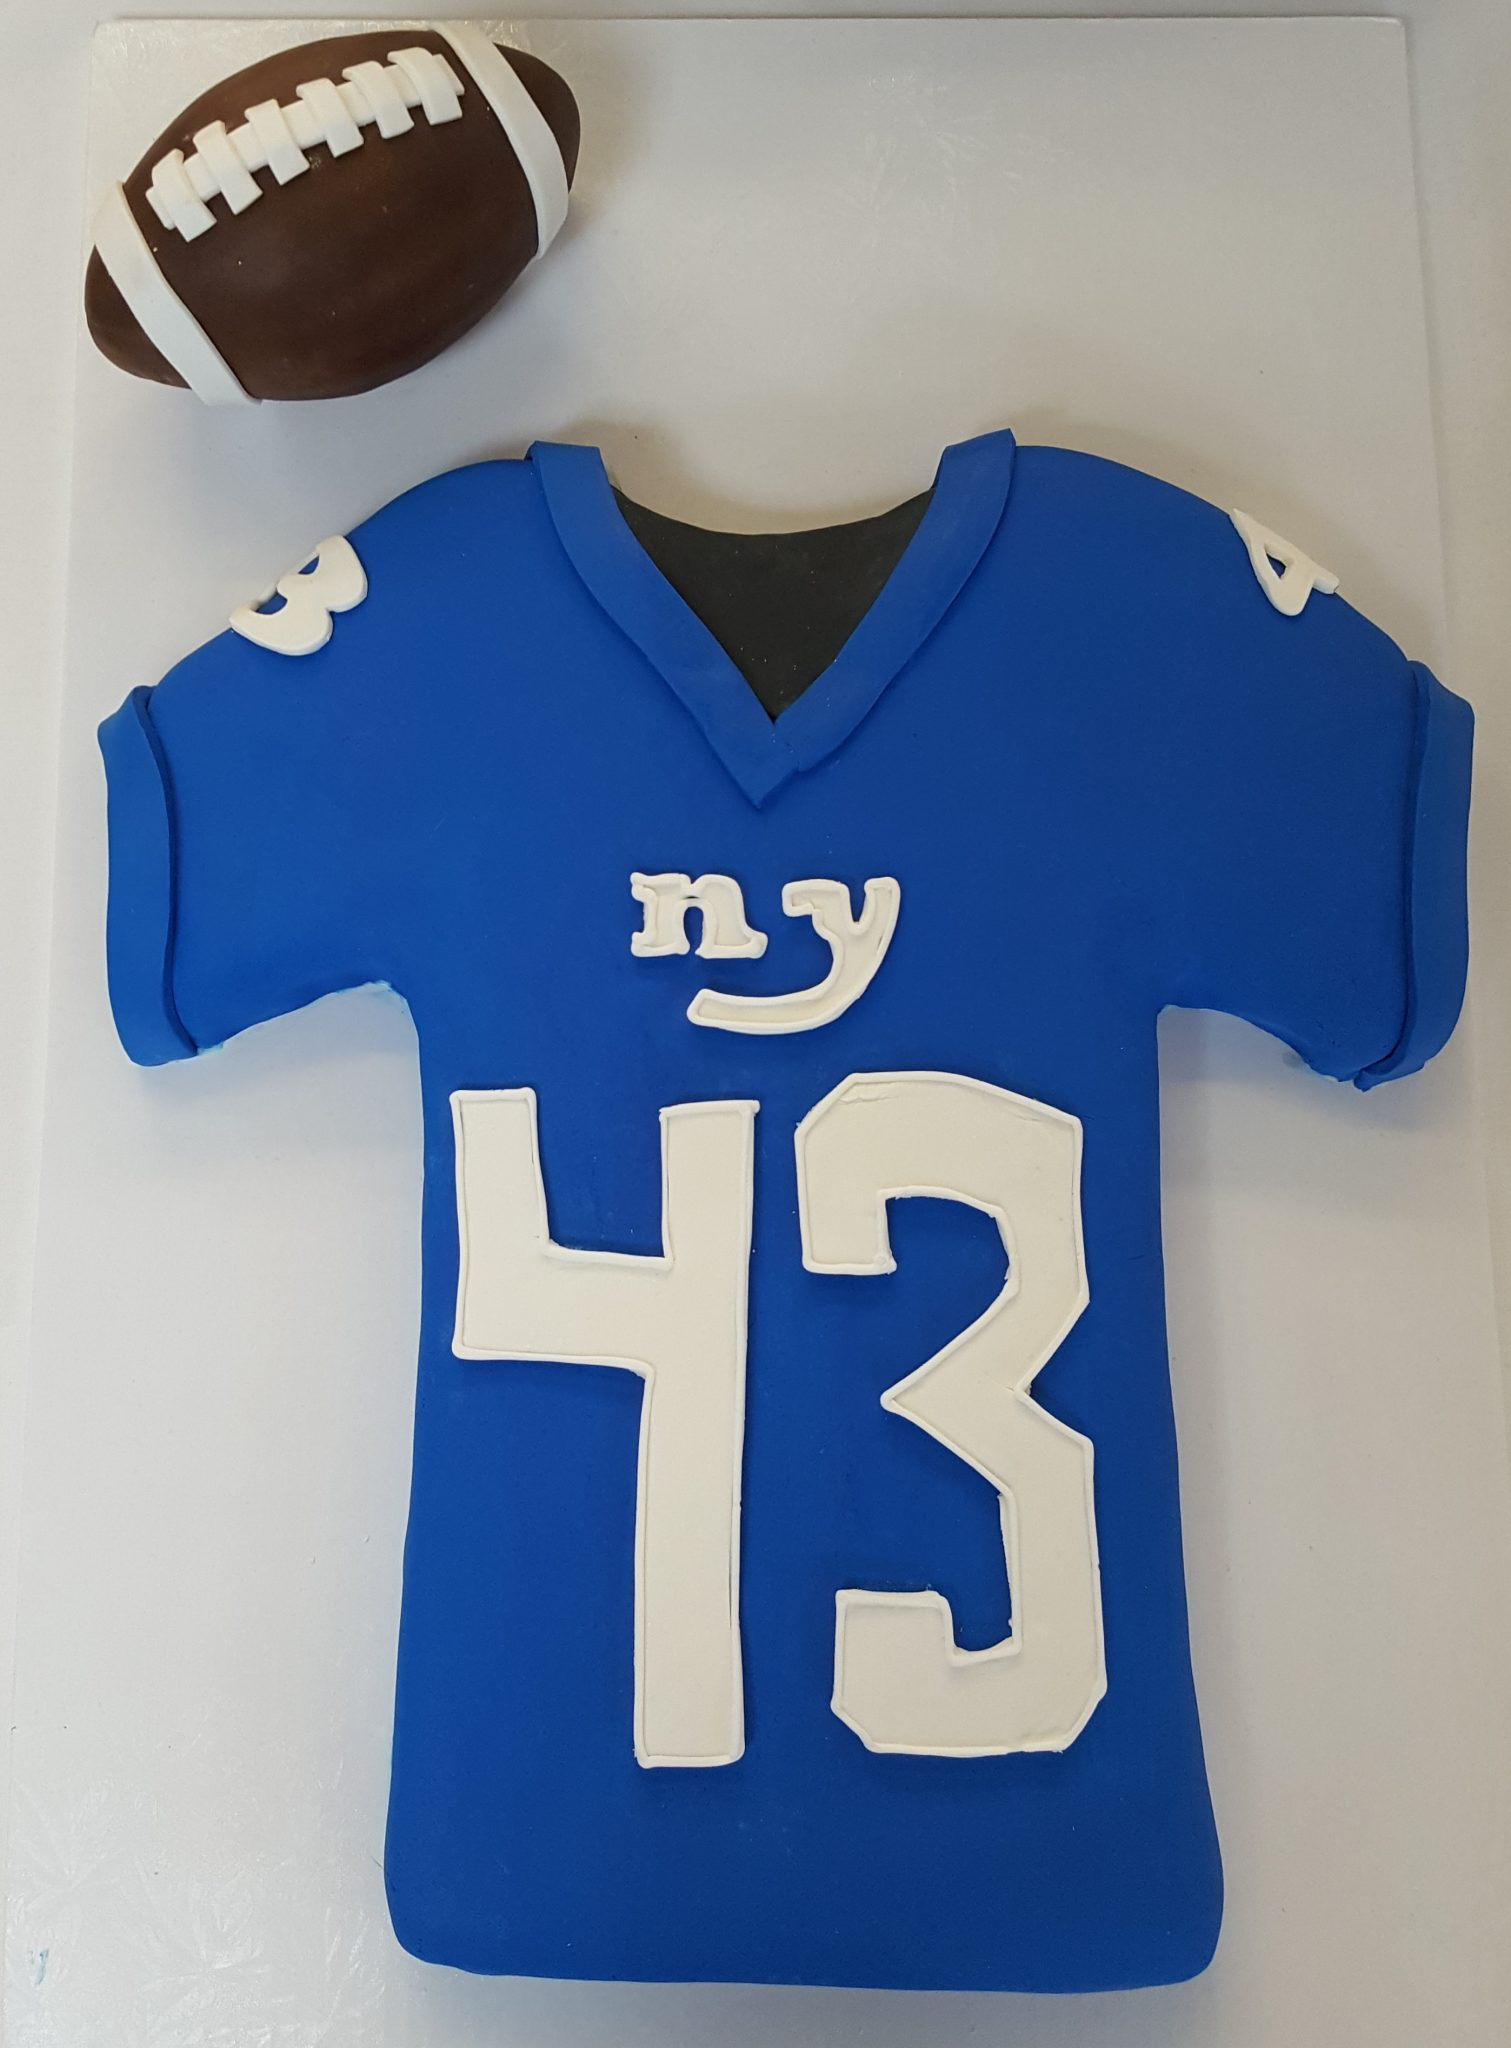 Football jersey, sports, NFL, SEC, ACC, bakery, jacksonville, beach, New, York, Giants, birthday